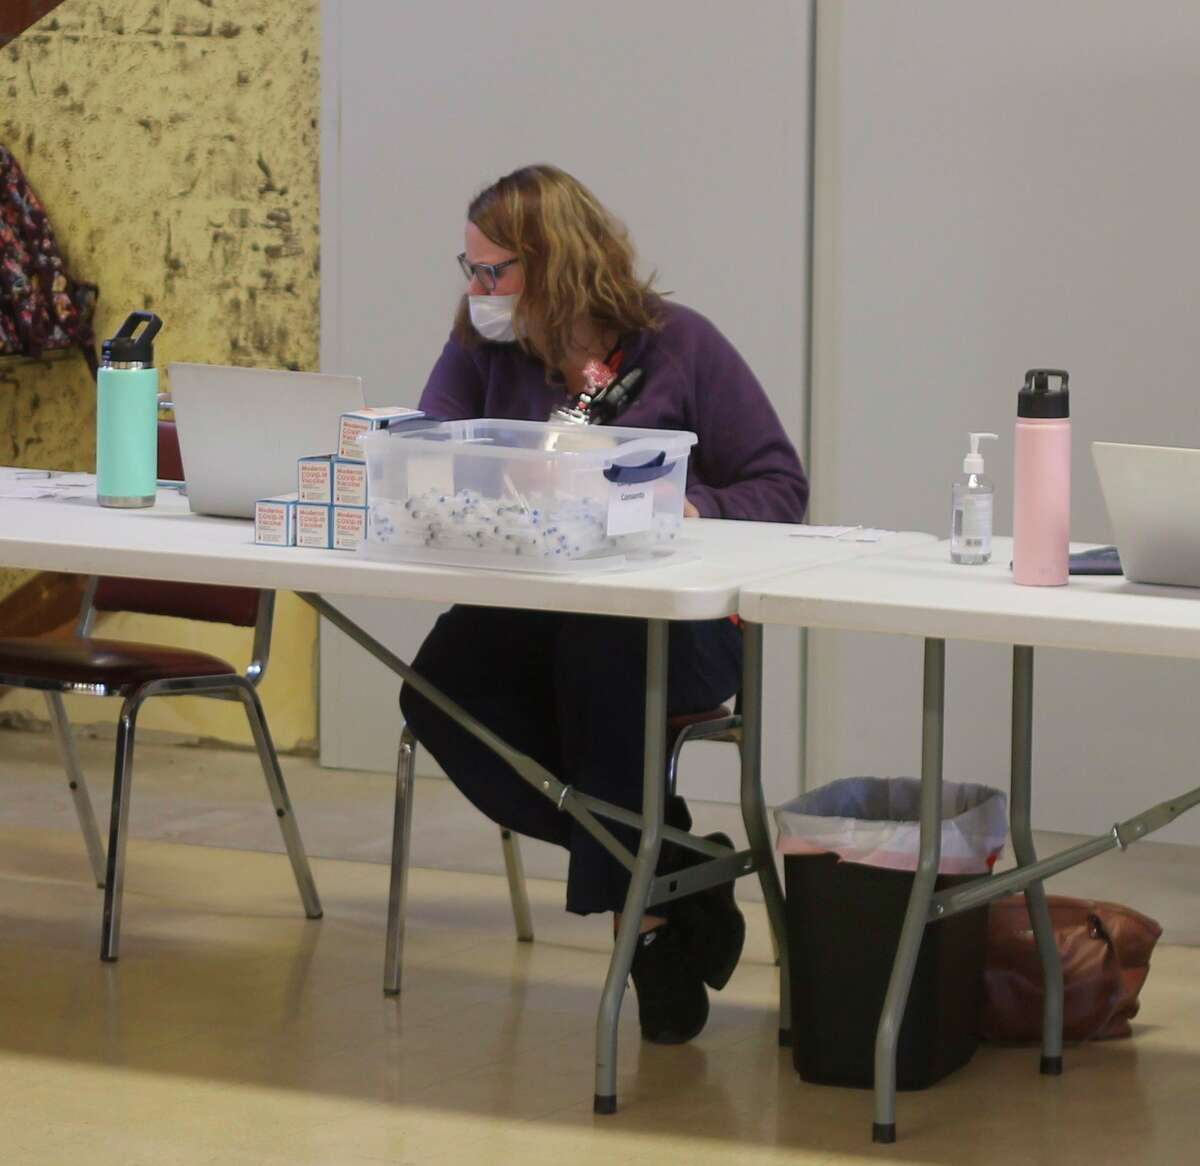 District Health Department #10 immunizations coordinator Bethanie Dean works during a COVID-19 vaccination clinic held at the Wagoner Community Center on Friday. (Kyle Kotecki/News Advocate)